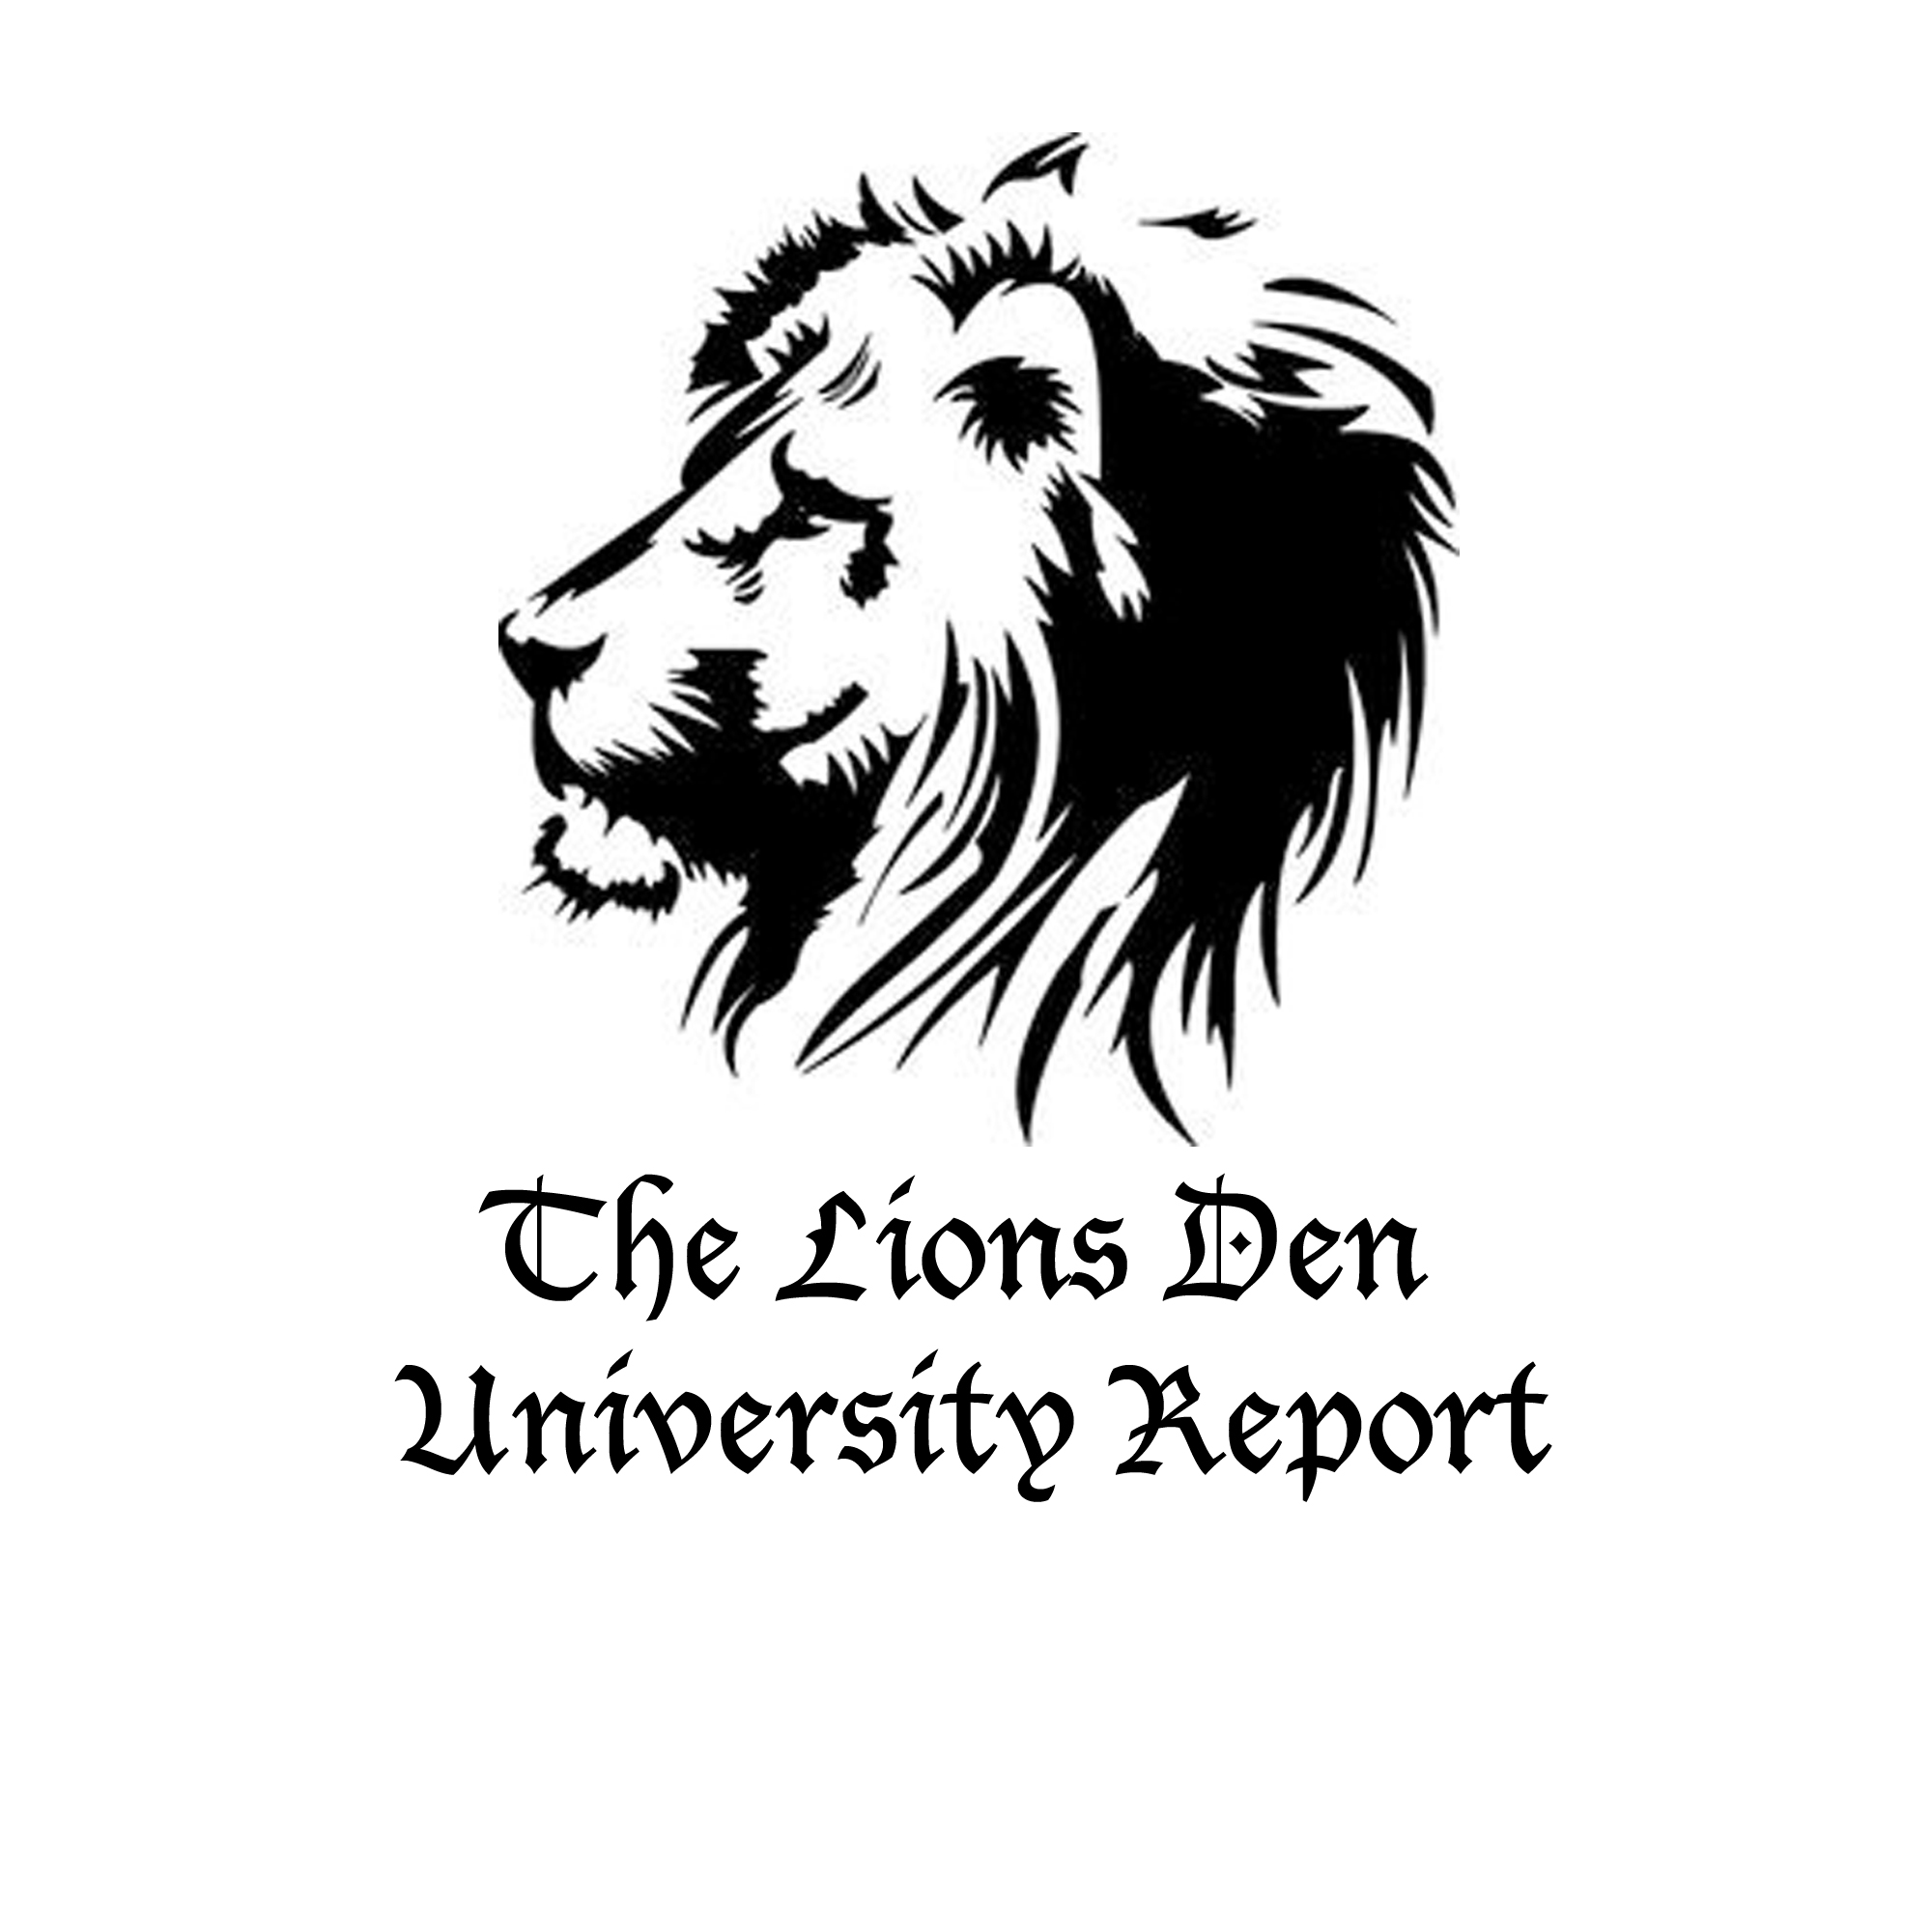 The Lions Den University Report